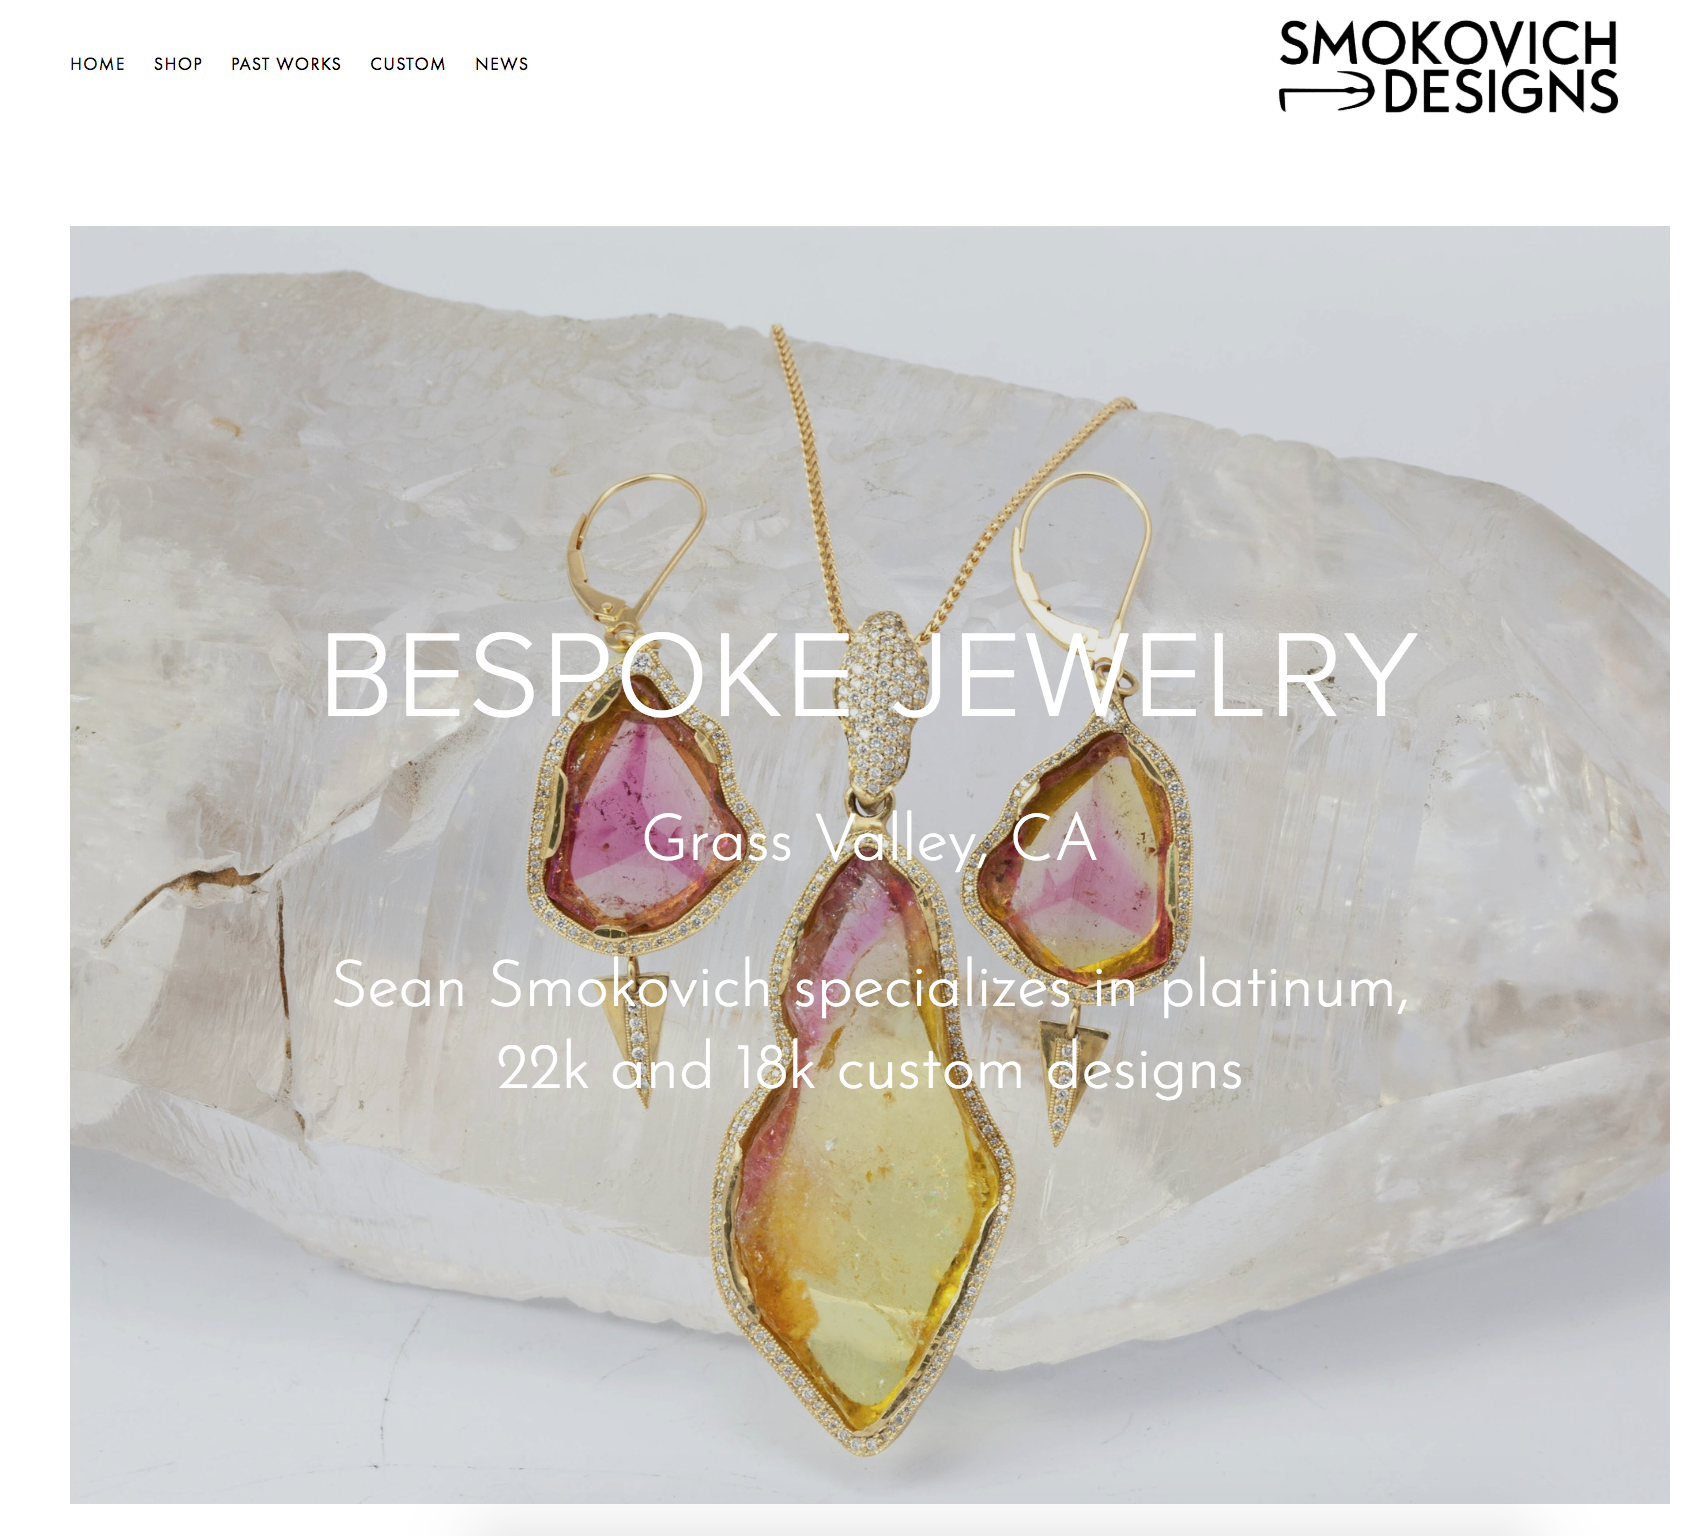 SMOKOVICH DESIGNS | FINE JEWELRY   On-going branding/consulting, photography, and web-design